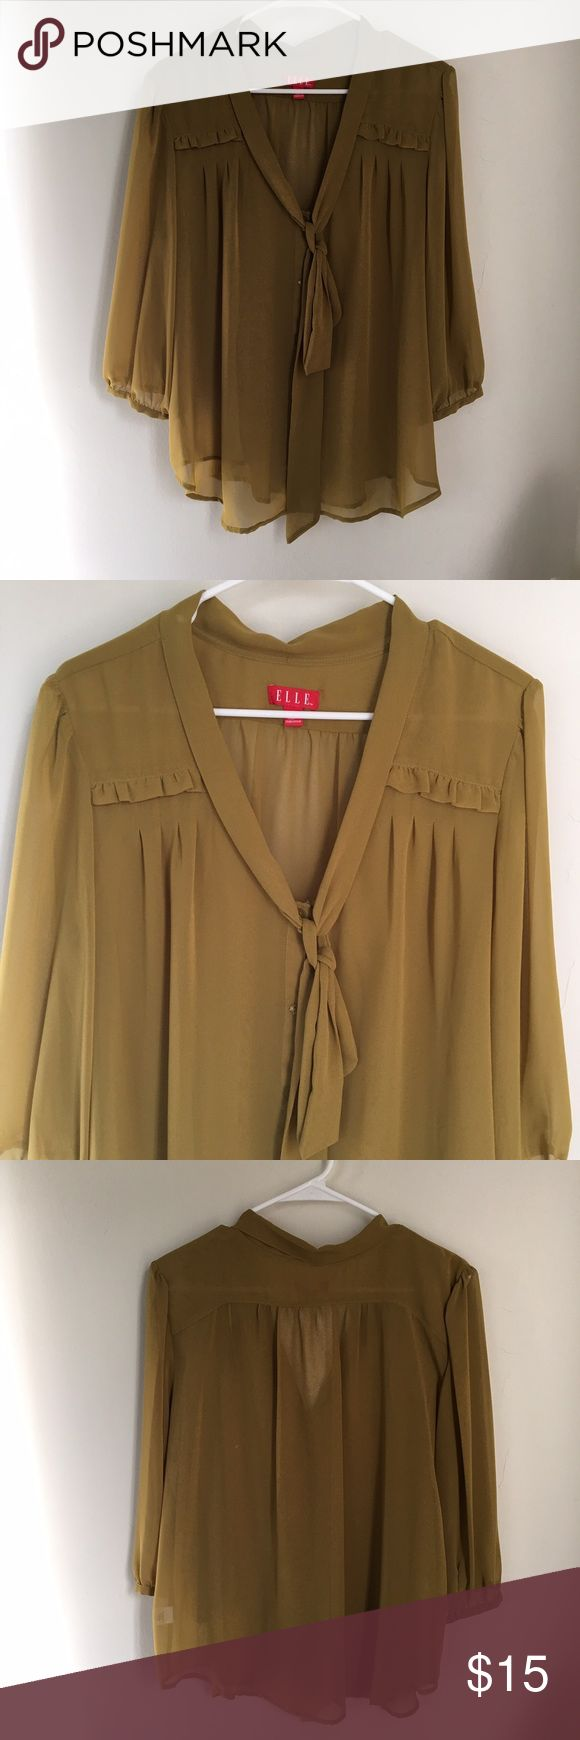 What To Wear Under A Sheer Yellow Blouse 80